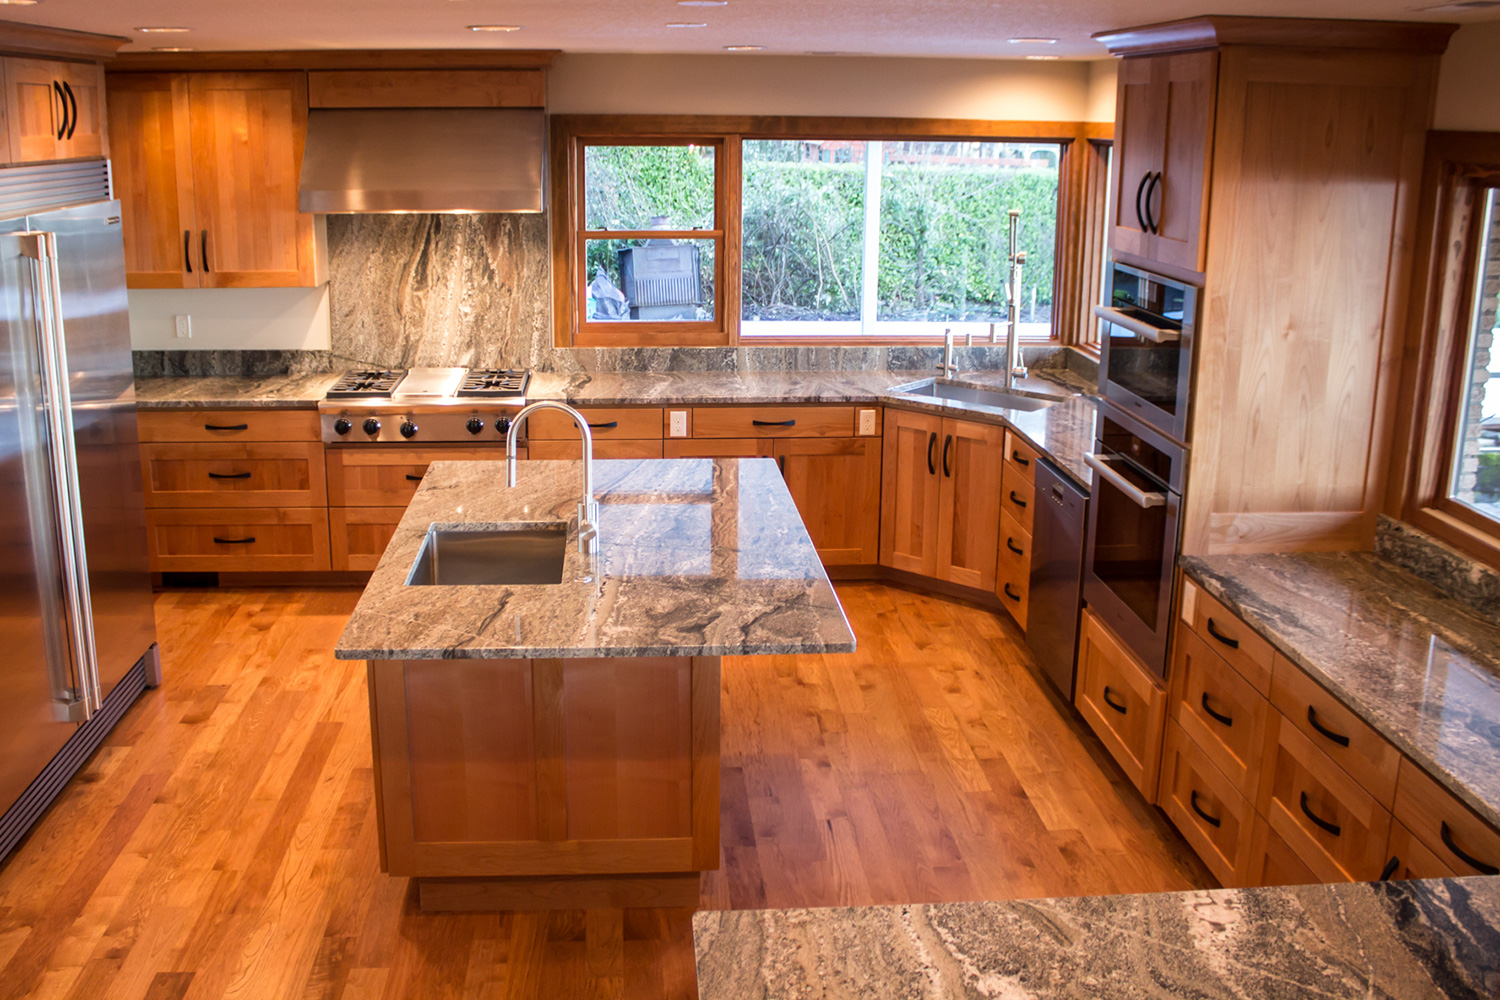 BLACK CAT design build llc - Renovations and Remodeling with a ...